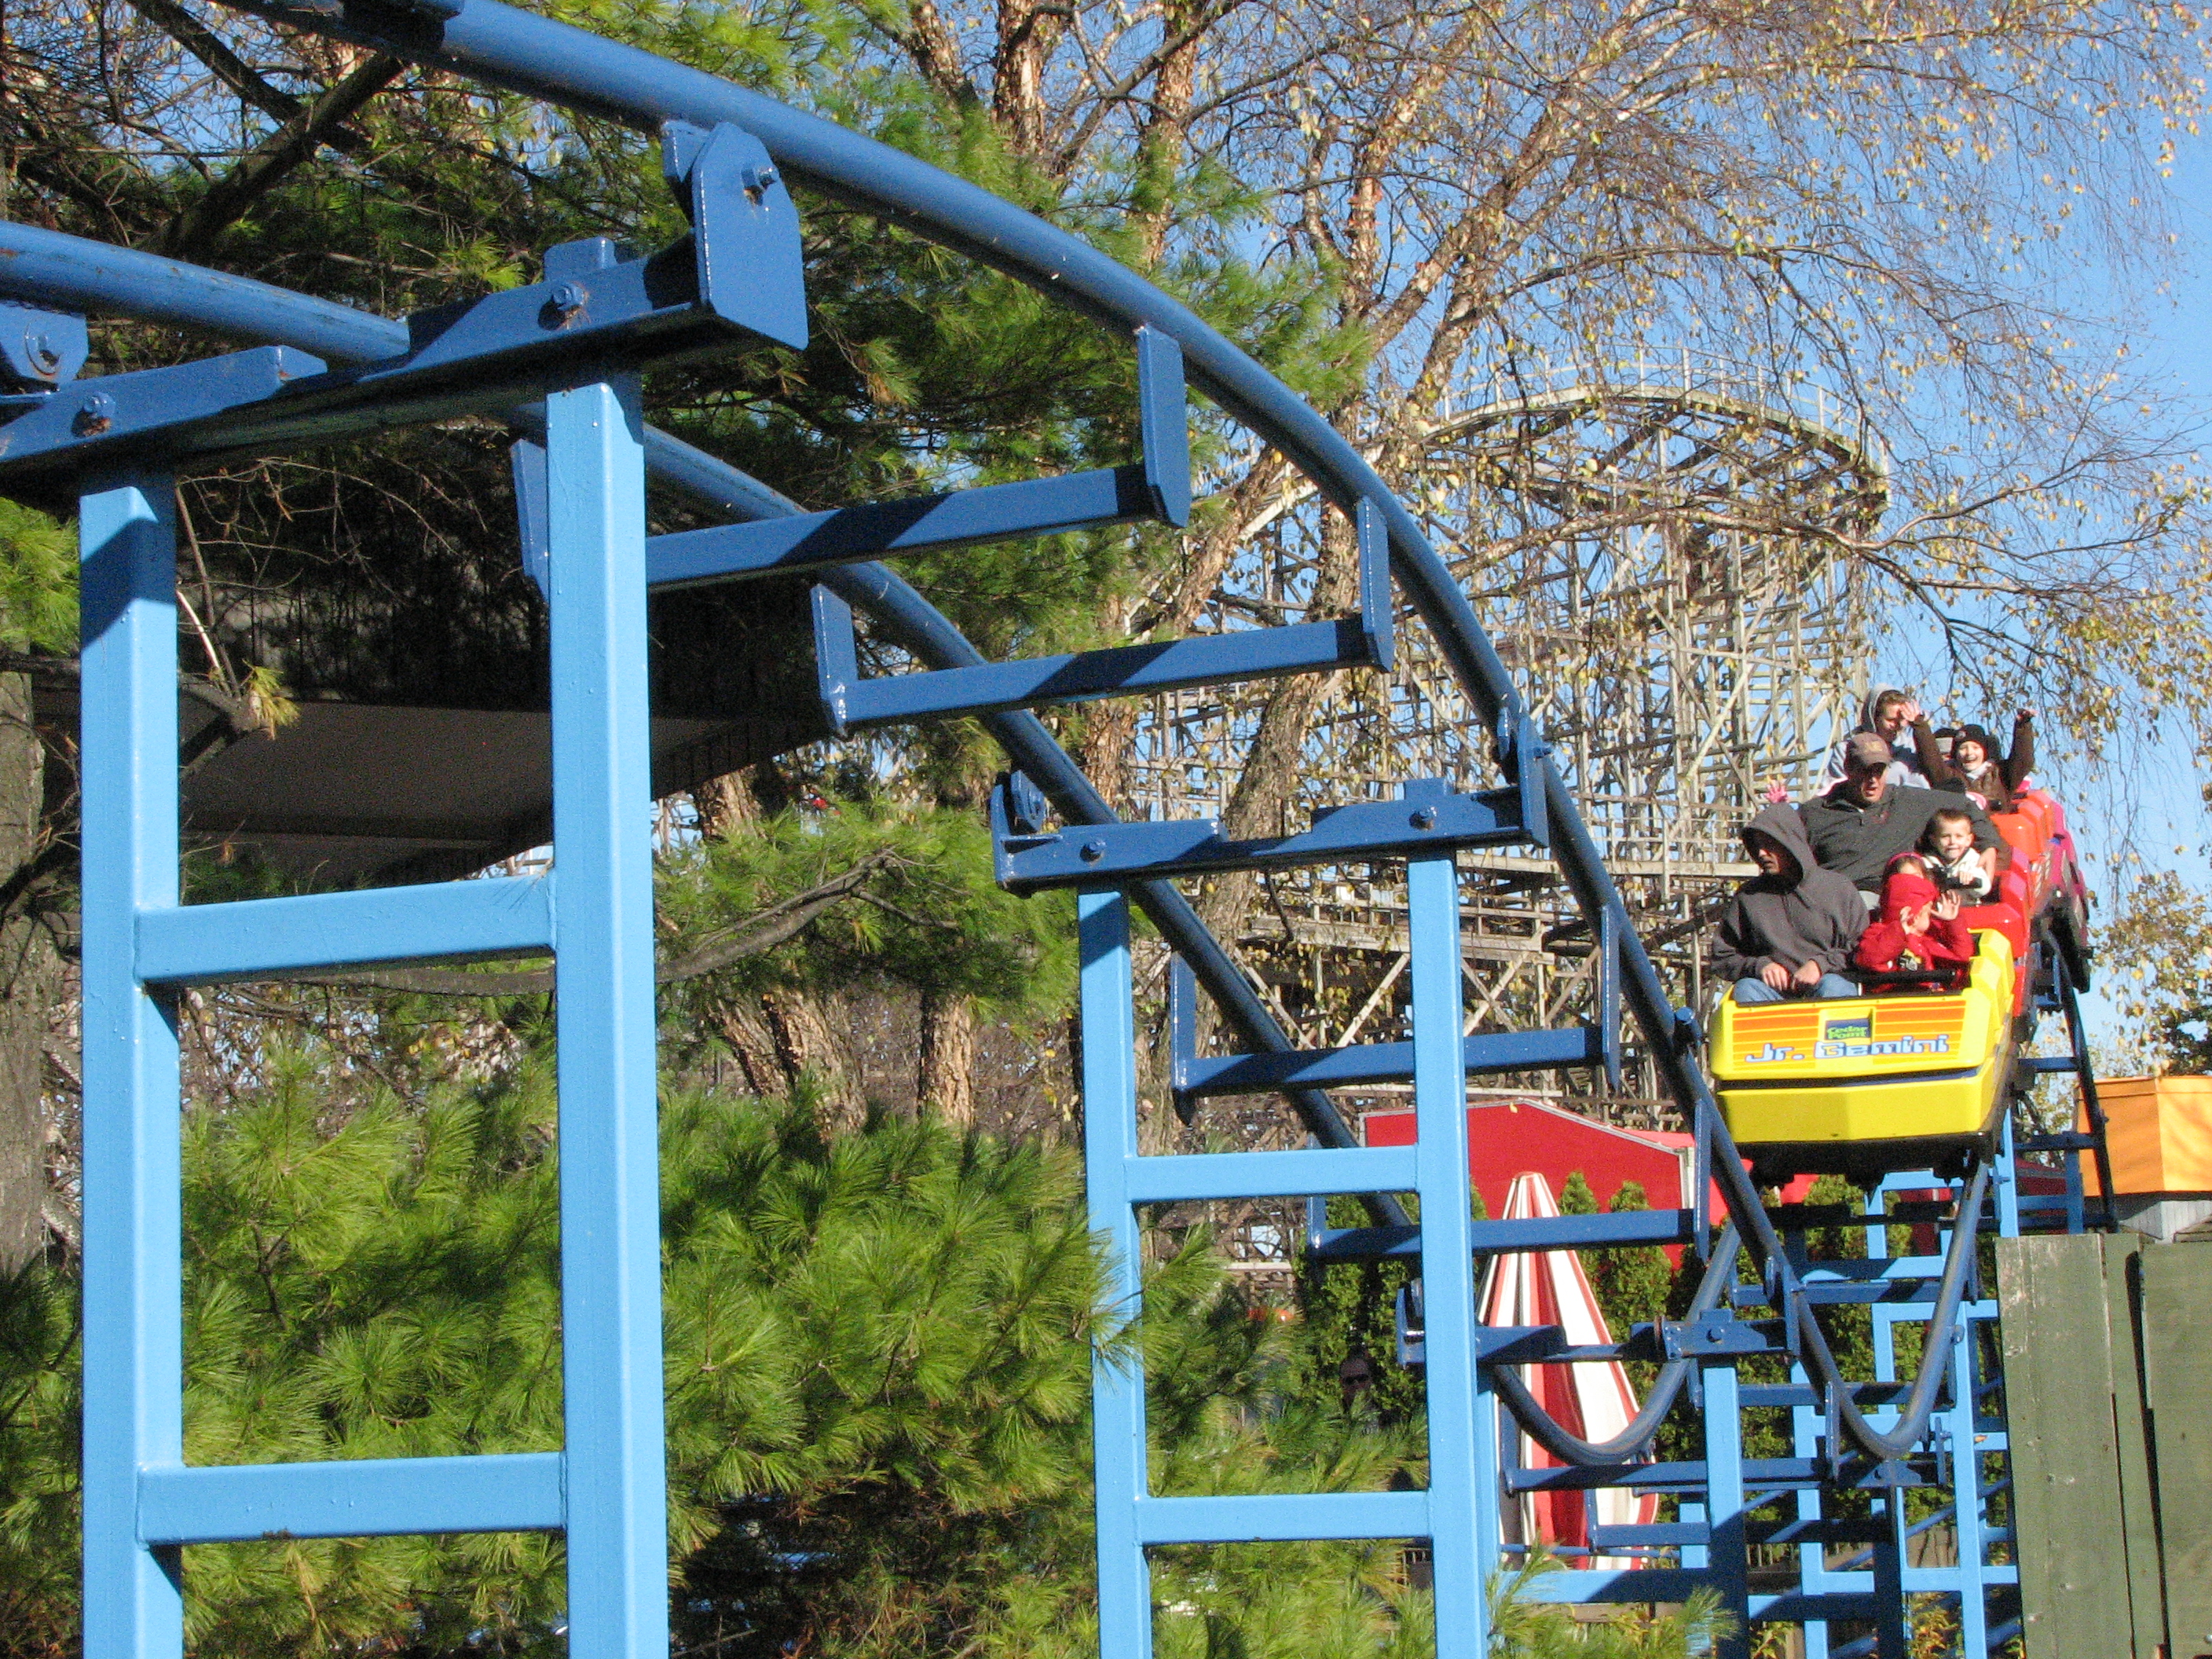 Jr gemini roller coaster - photo#10